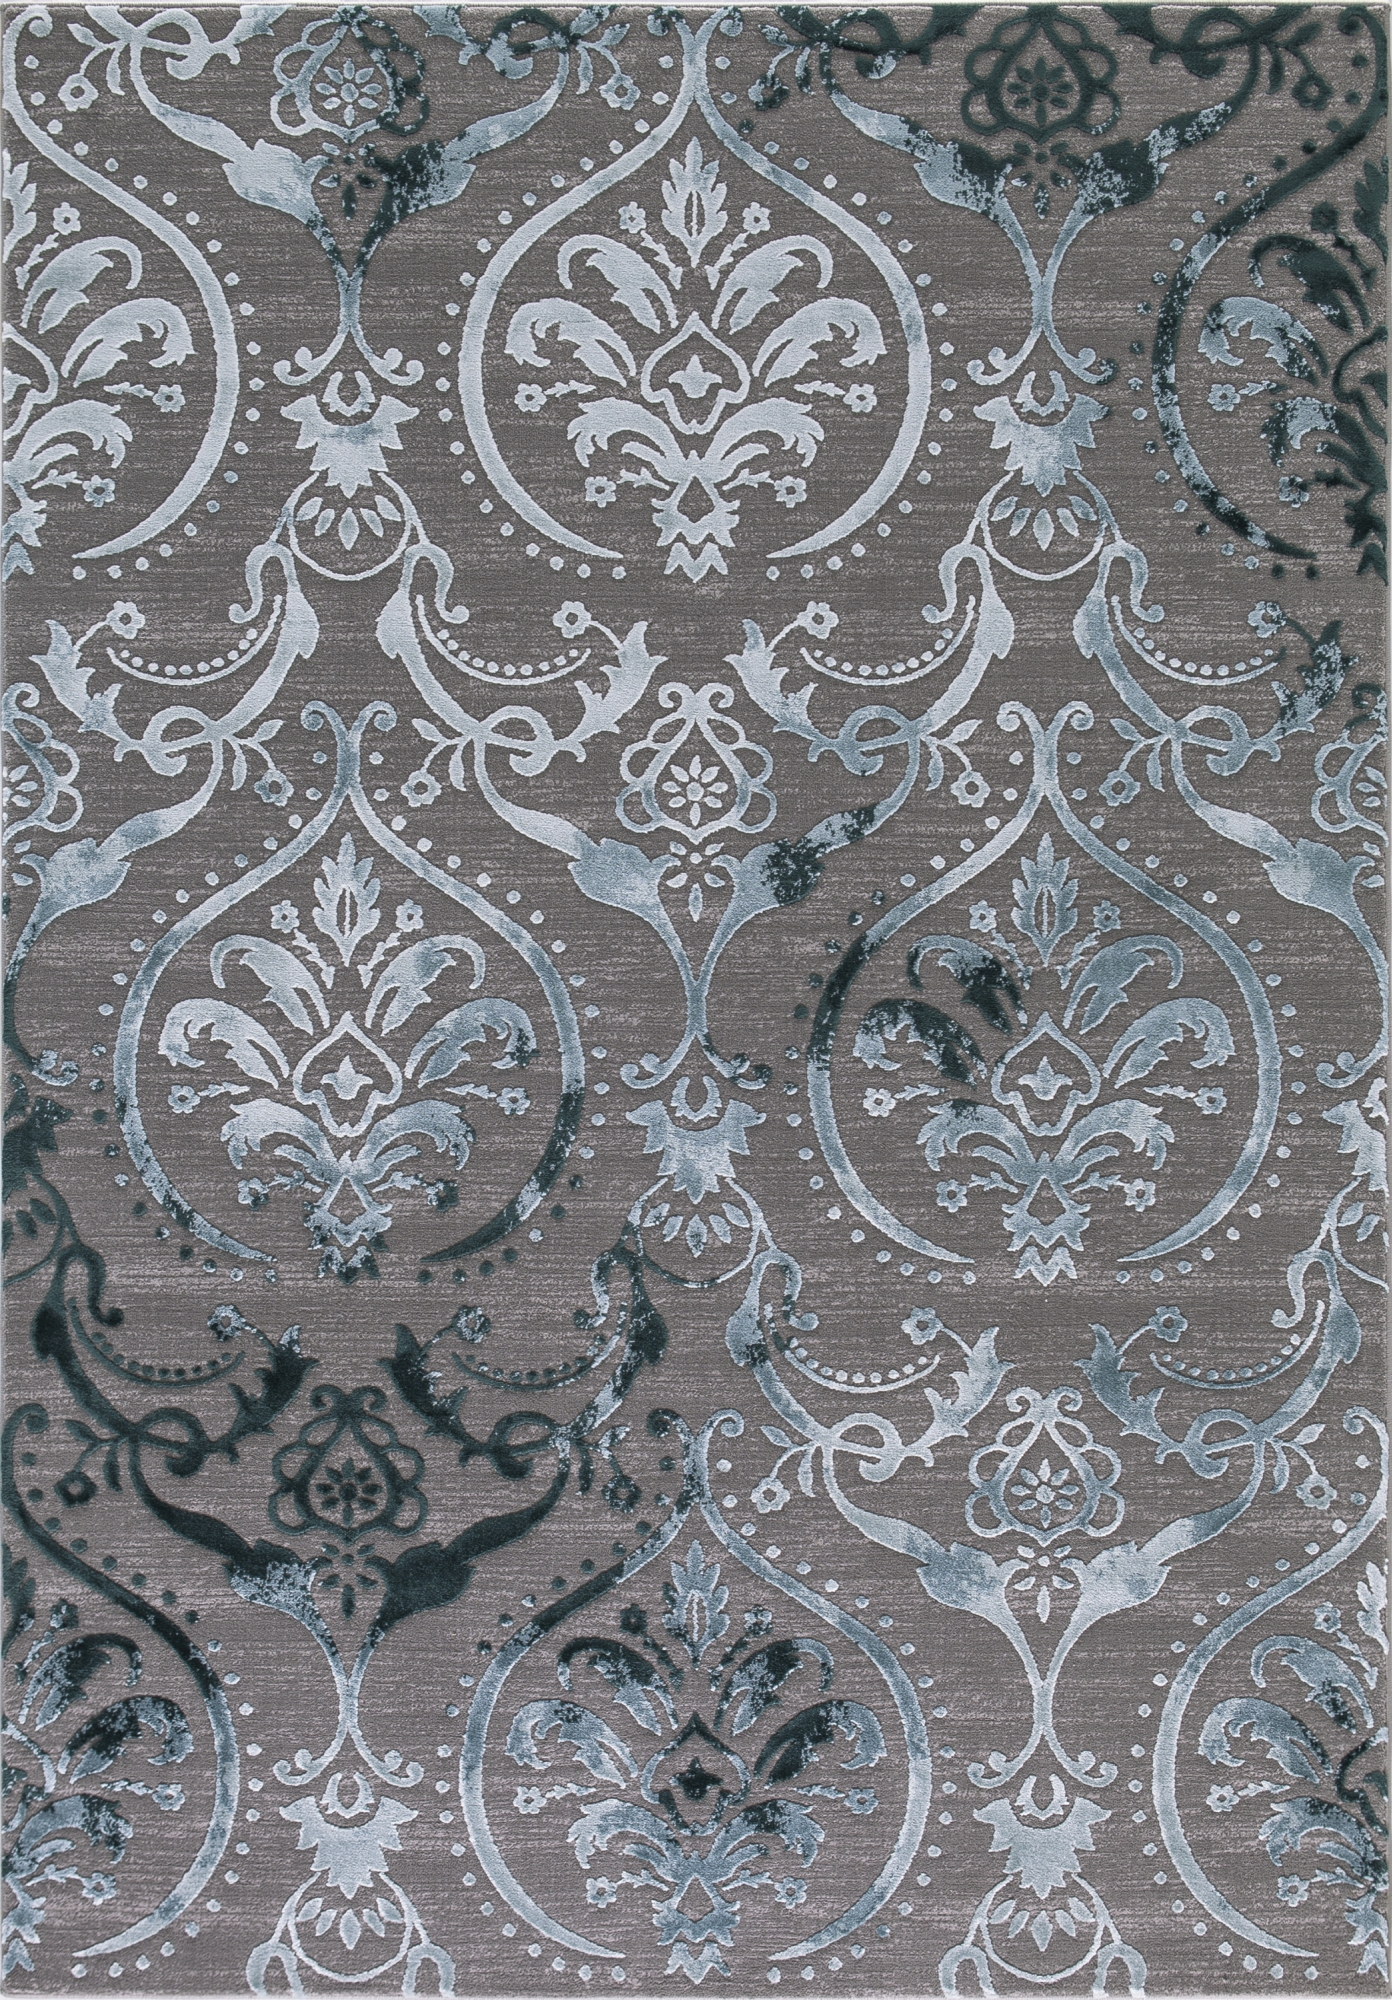 Concord Global Trading Thema Collection Large Damask Area Rug